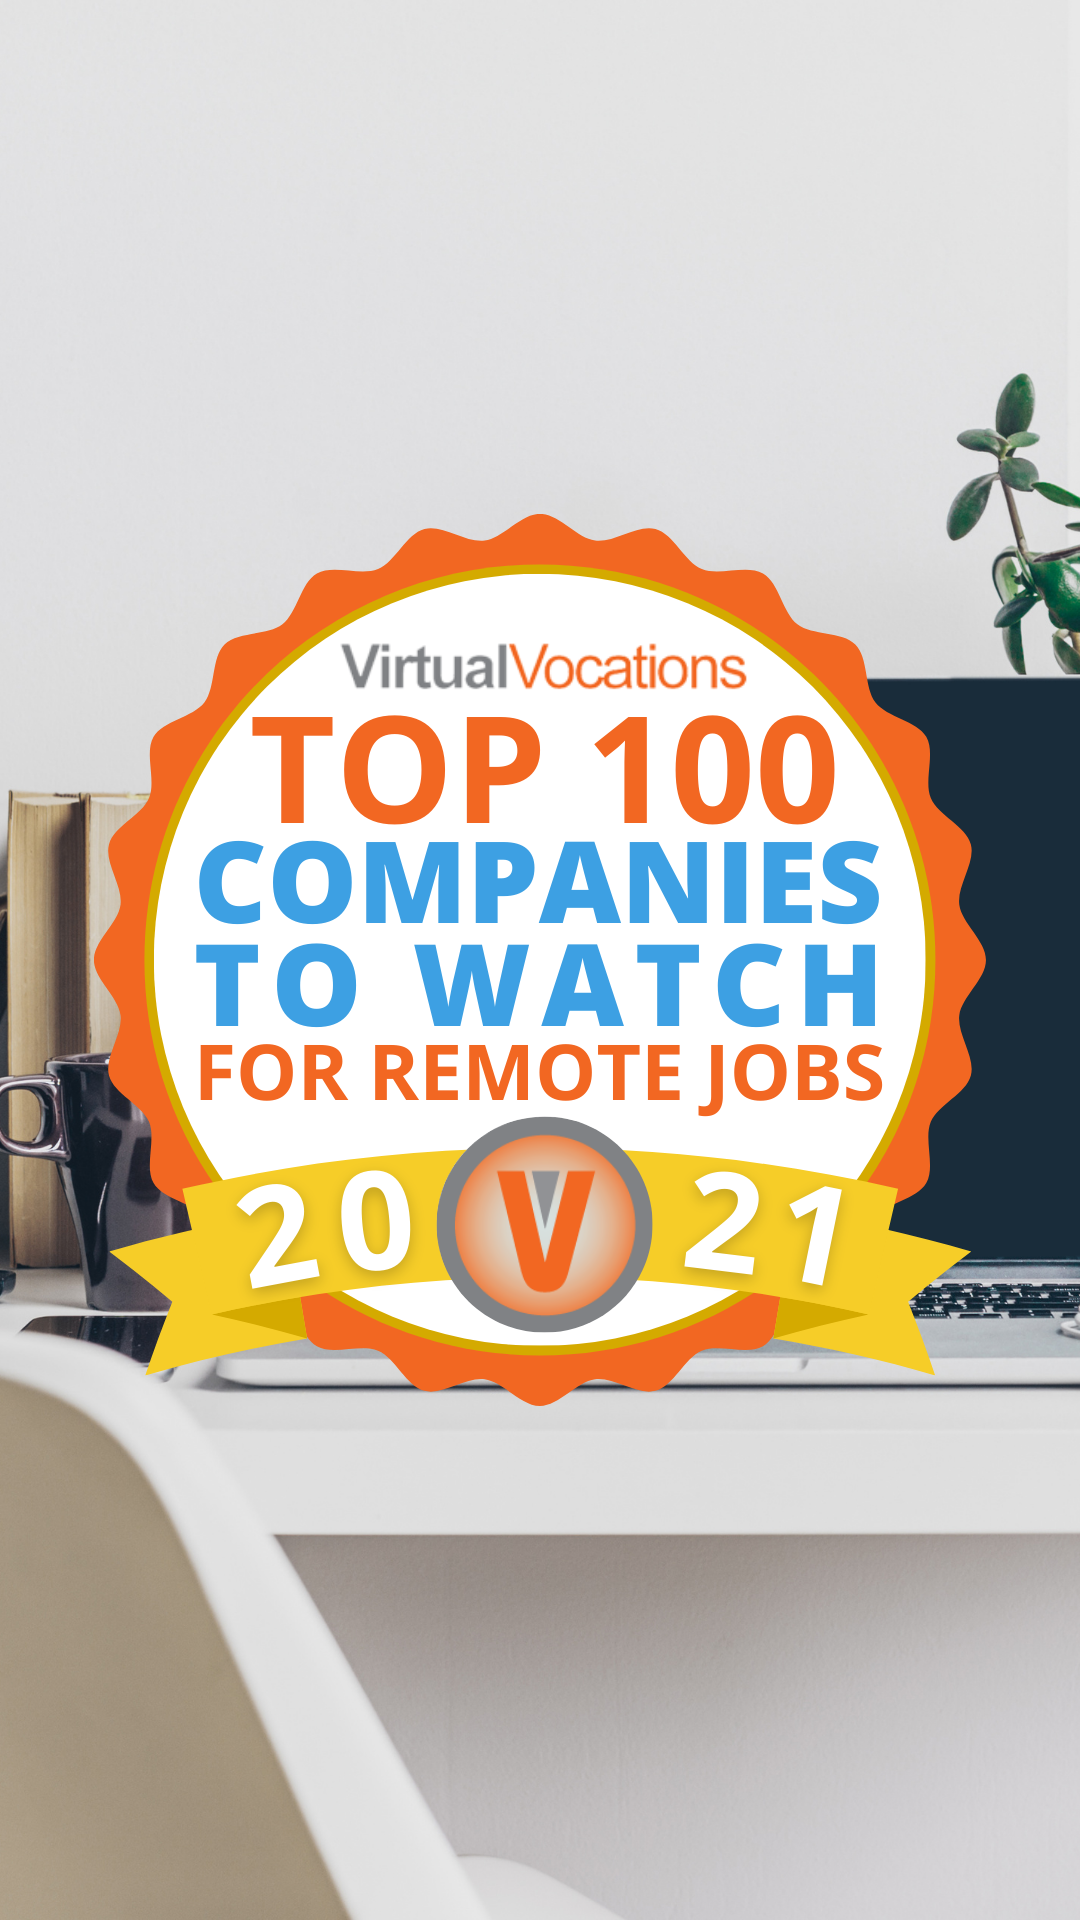 Work From Home Jobs Top Companies For Remote Jobs In 2021 In 2021 Remote Jobs Marketing Jobs Job